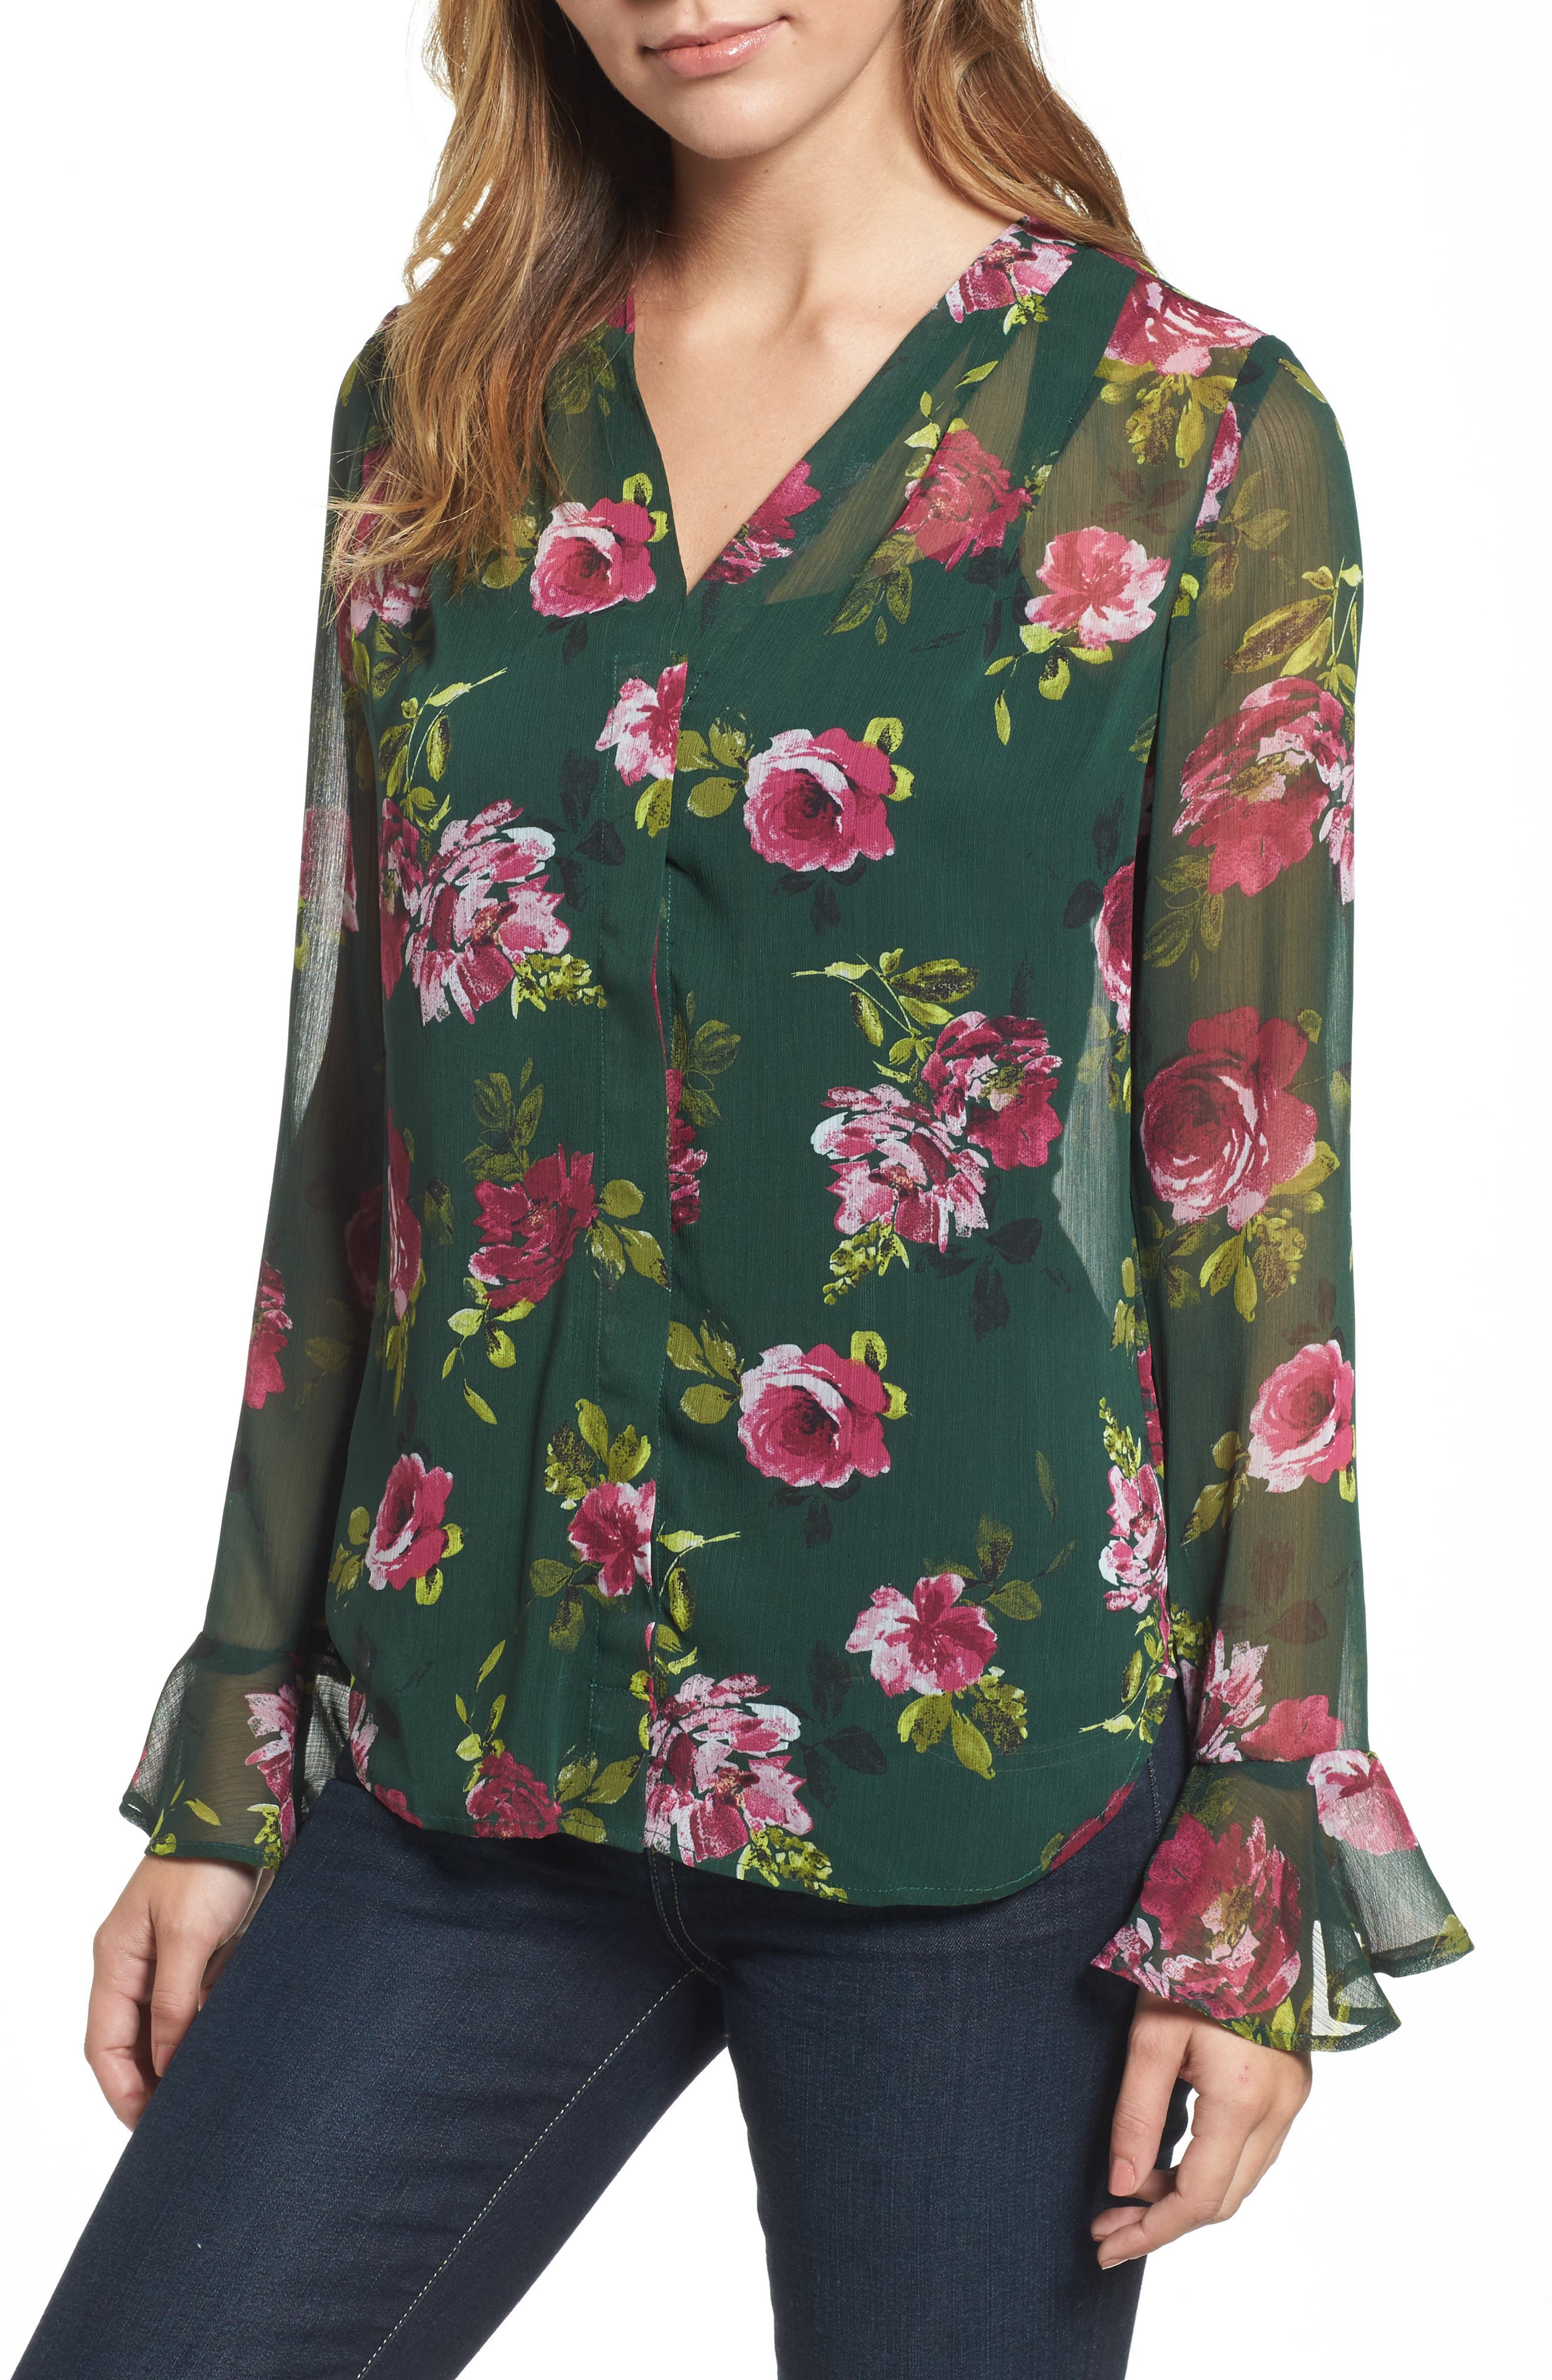 Silvy Floral Print Blouse,                         Main,                         color, Midnight Forest